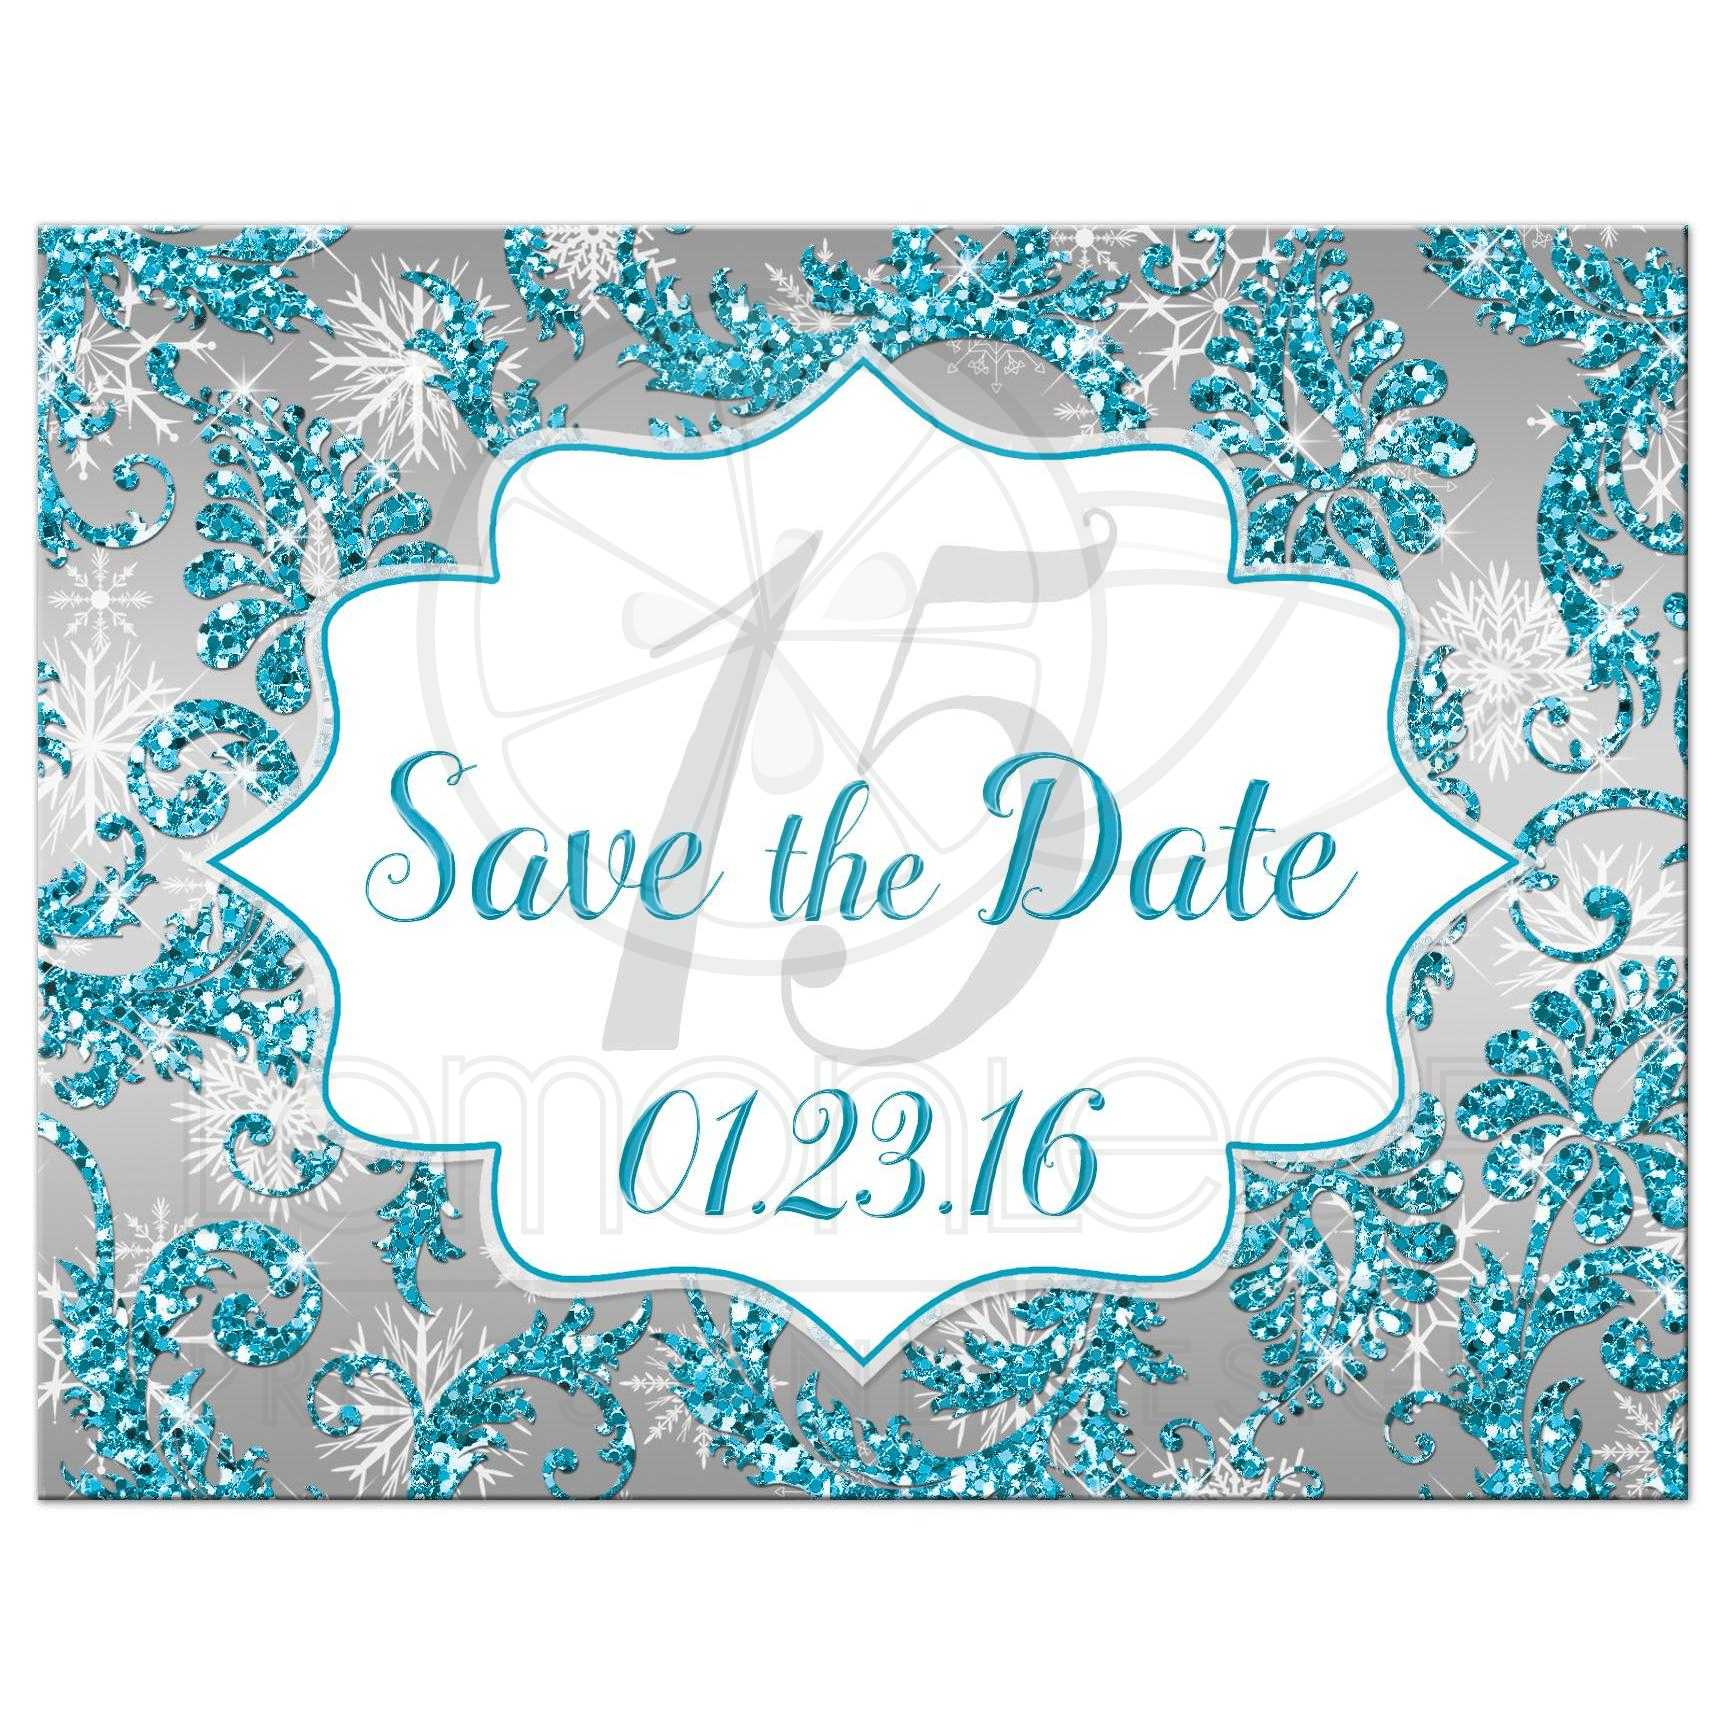 Quince Save The Date Kleobeachfixco - Save the date magnet templates